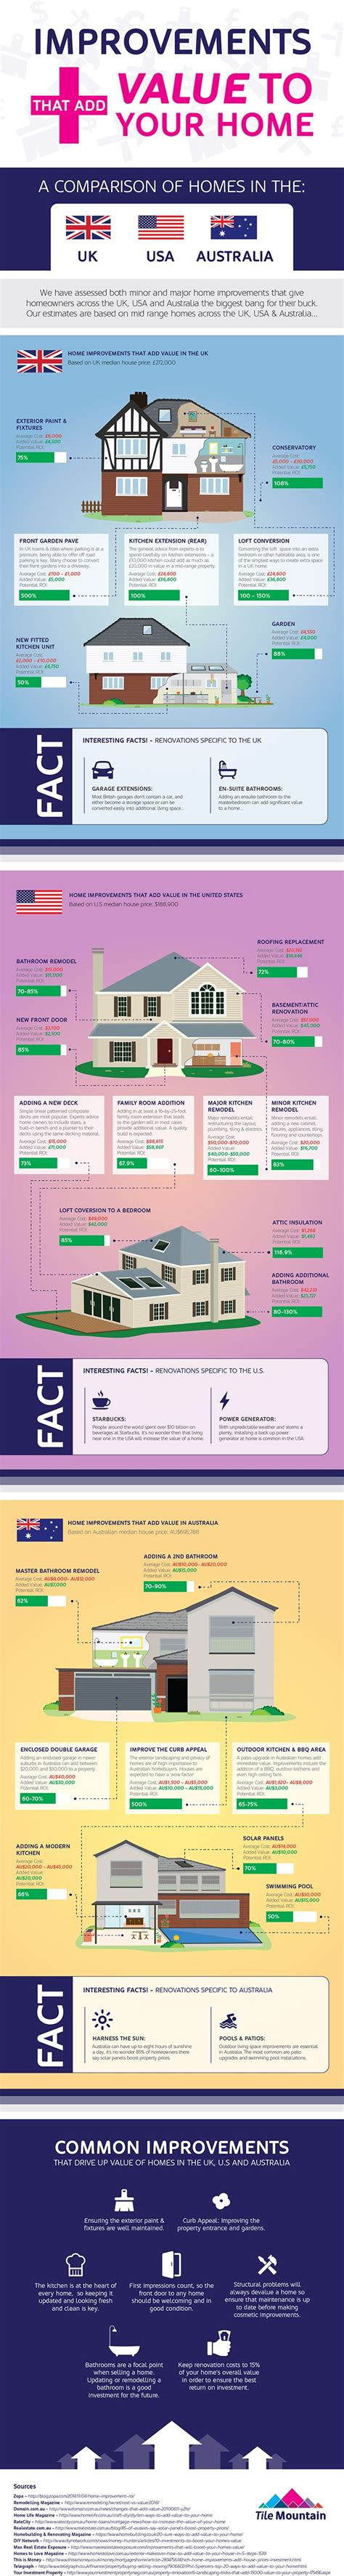 home improvements that add value to property uk vs u s vs